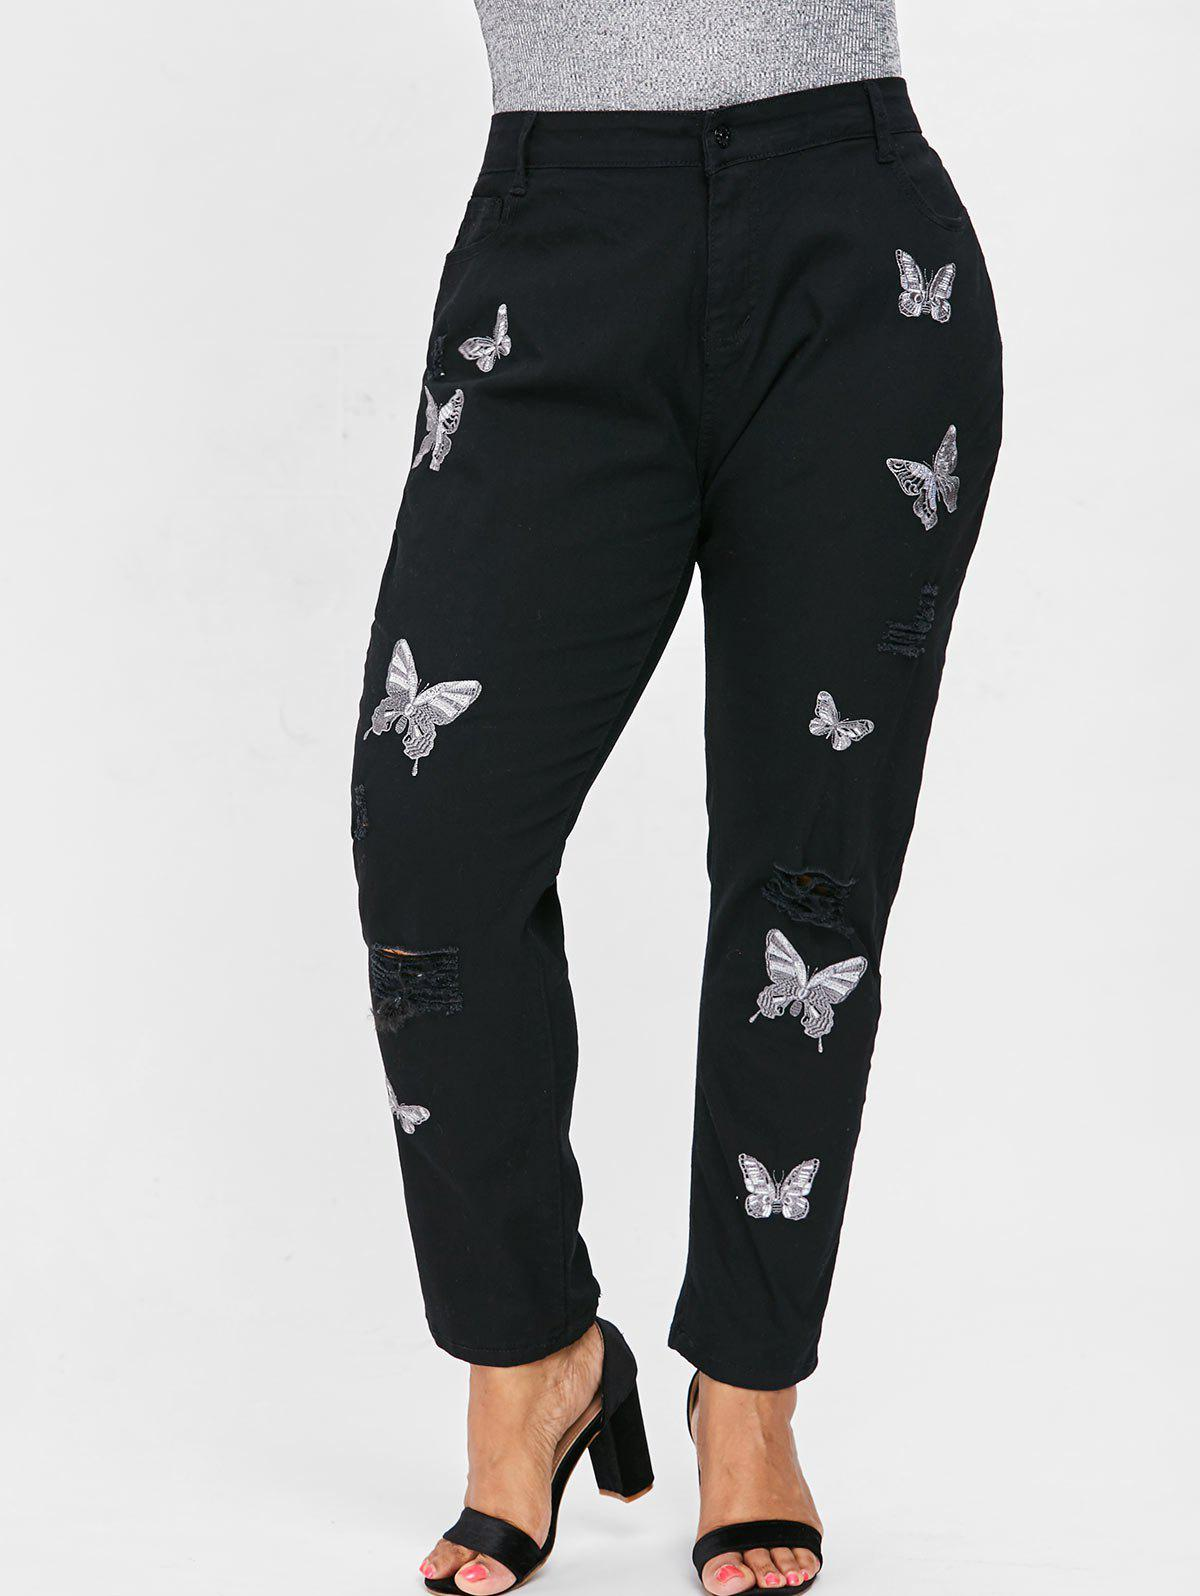 314bead733f8f 68% OFF] Ripped Plus Size Butterfly Embroidery Jeans | Rosegal